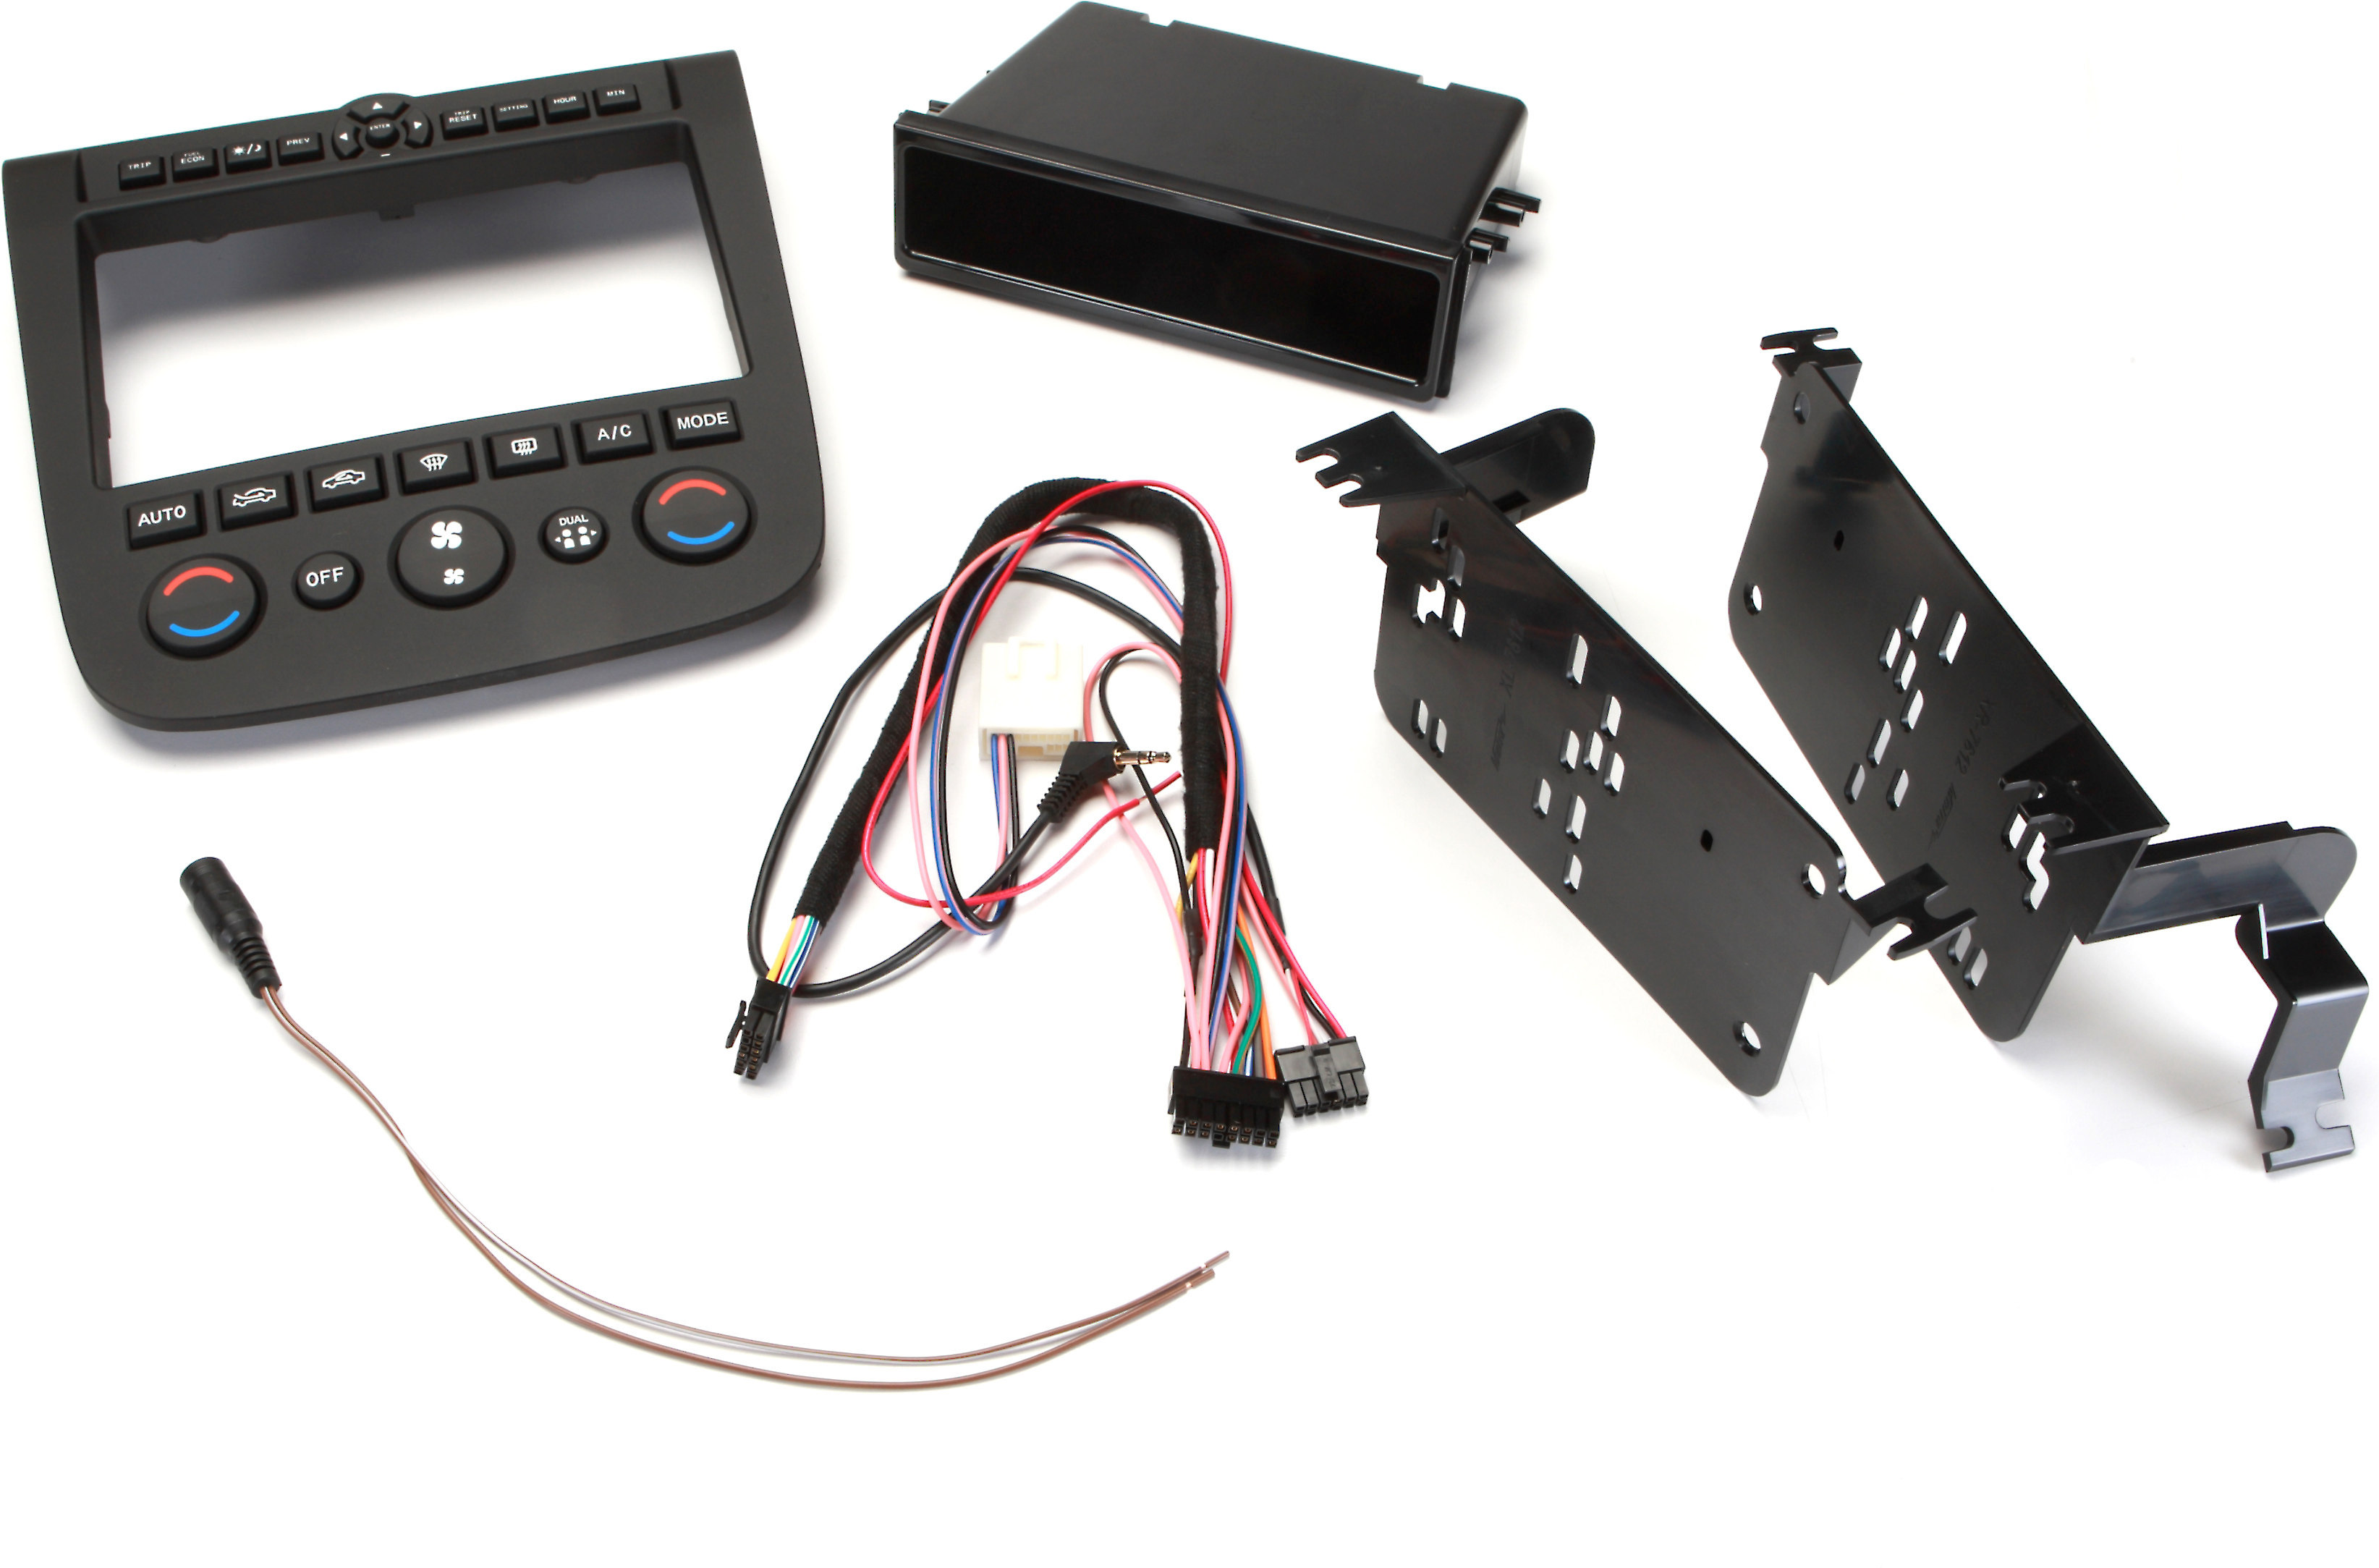 Metra 99-7612A Single//Double DIN Installation Dash Kit with Aluminum Finish for 2003-2007 Nissan Murano